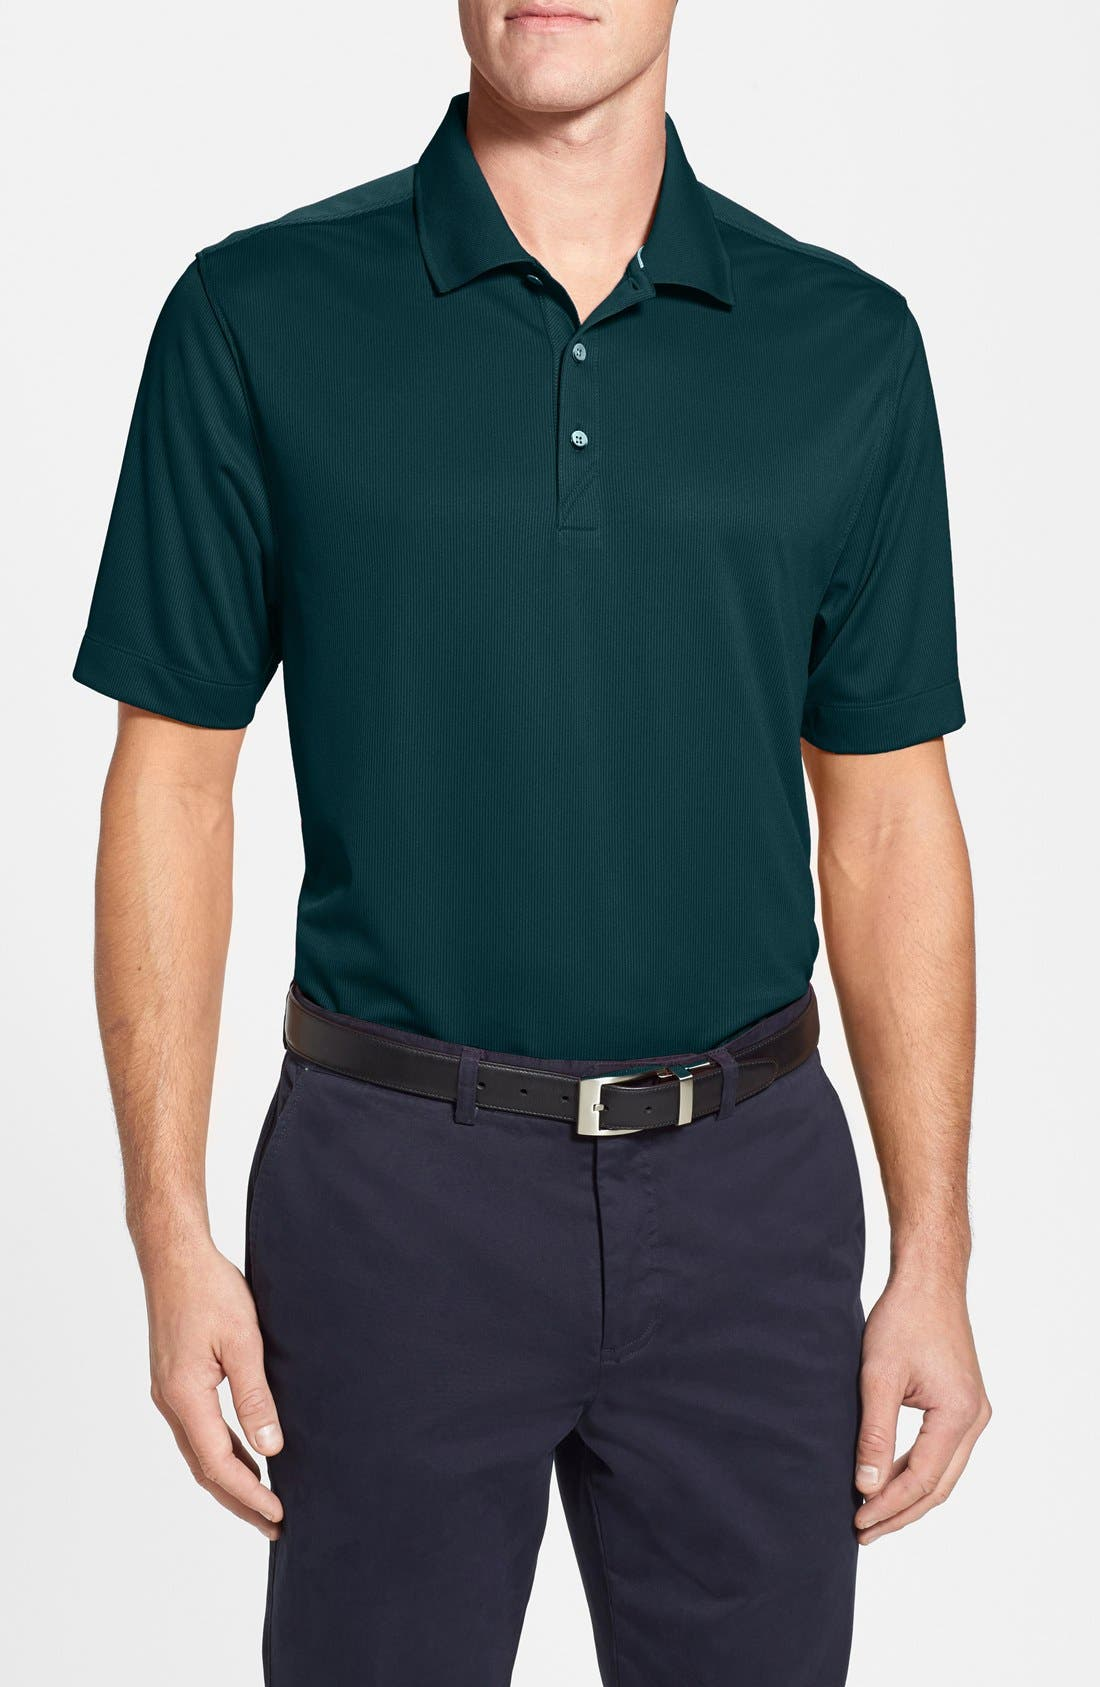 Cutter & Buck 'Glendale' DryTec Moisture Wicking Polo (Big & Tall)